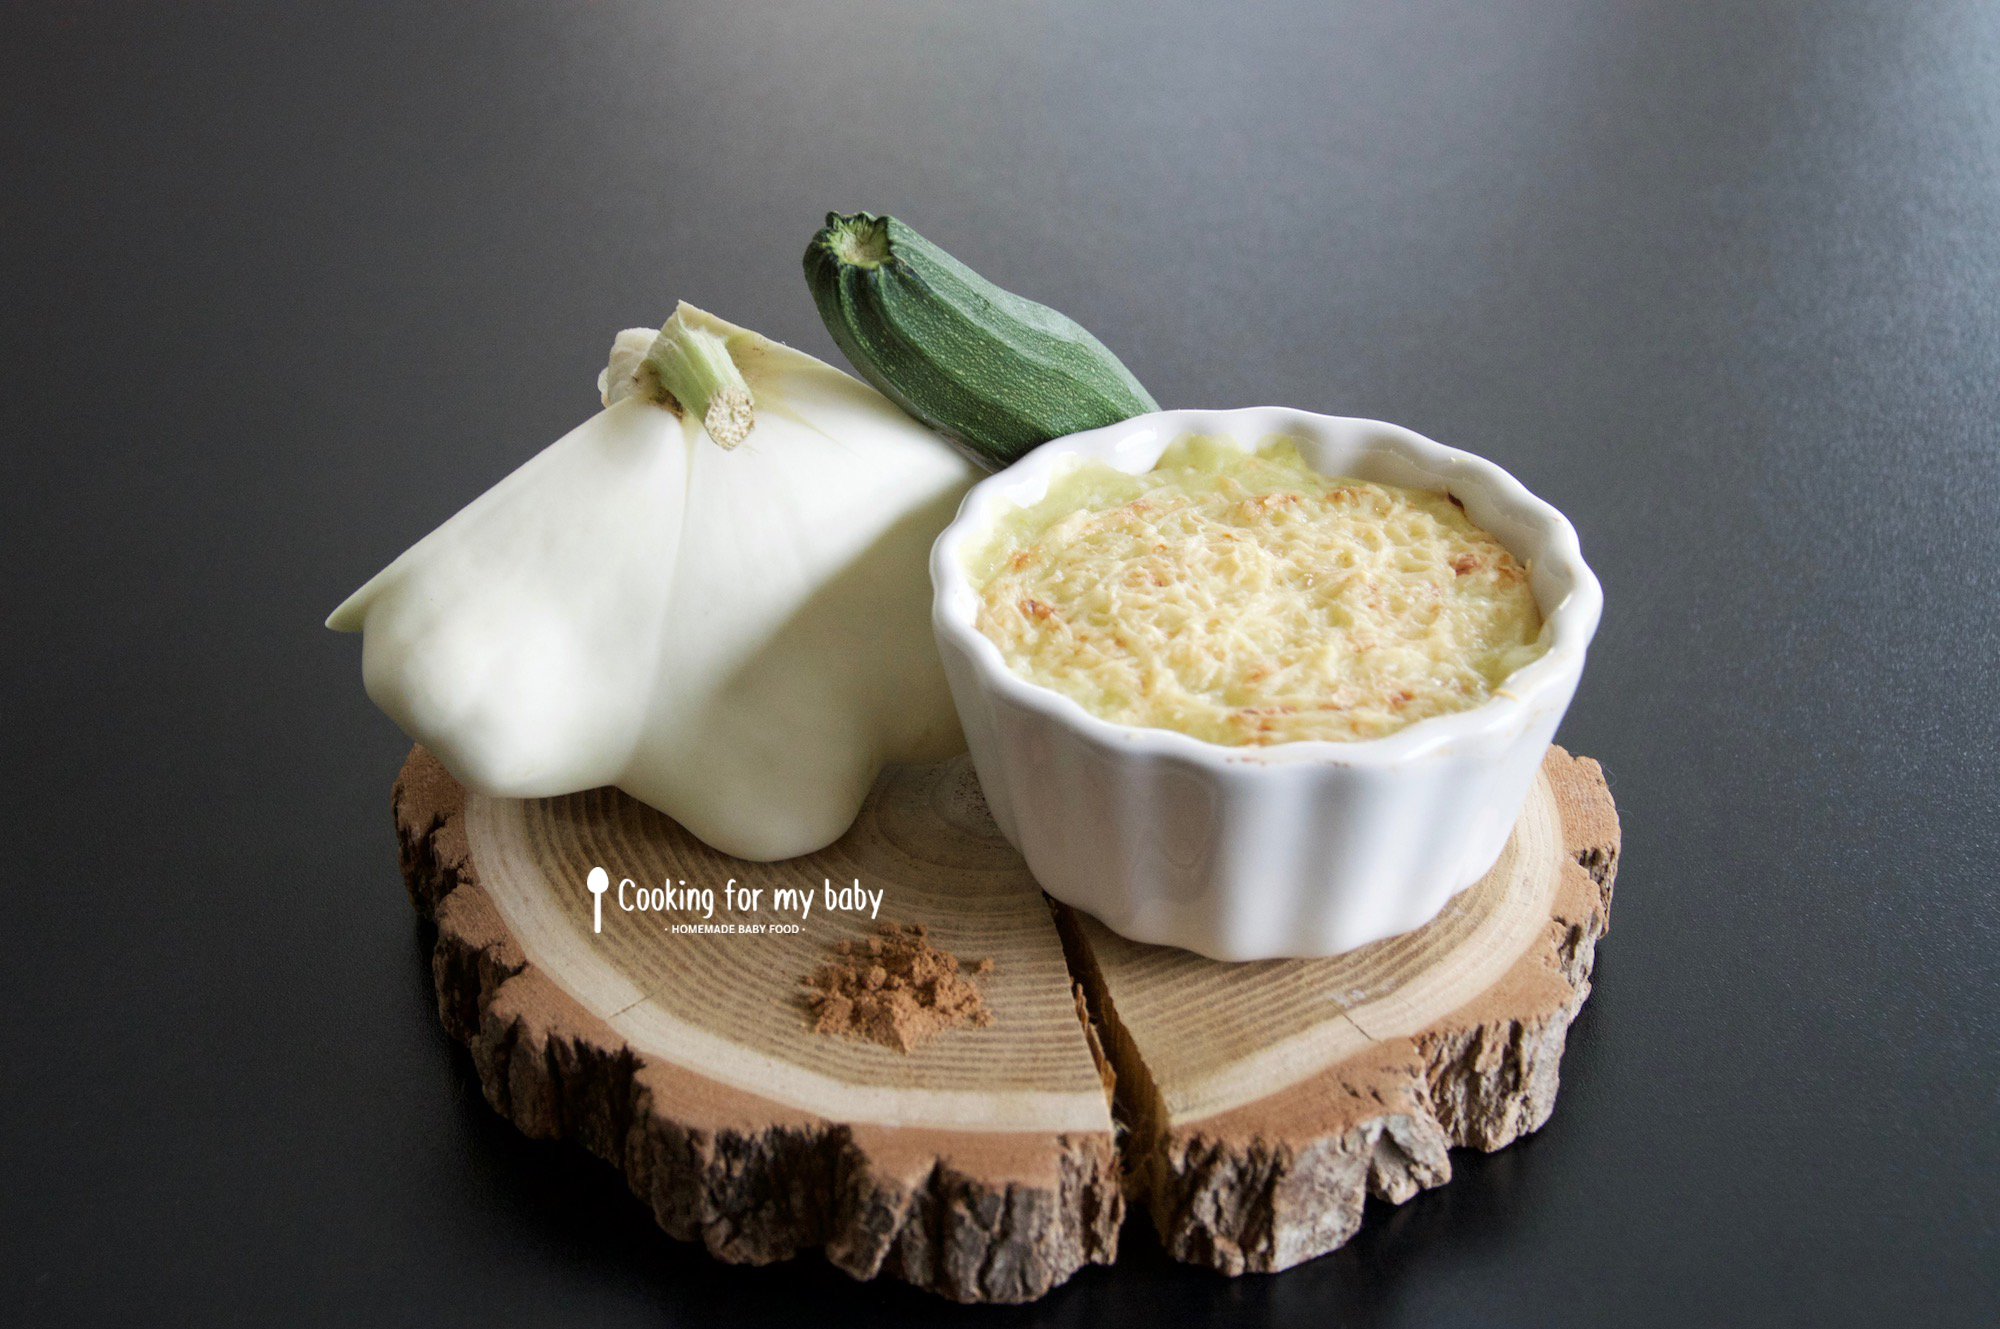 recette de pur e de patisson courgette et pomme de terre gratin e l 39 emmental pour b b d s 10. Black Bedroom Furniture Sets. Home Design Ideas